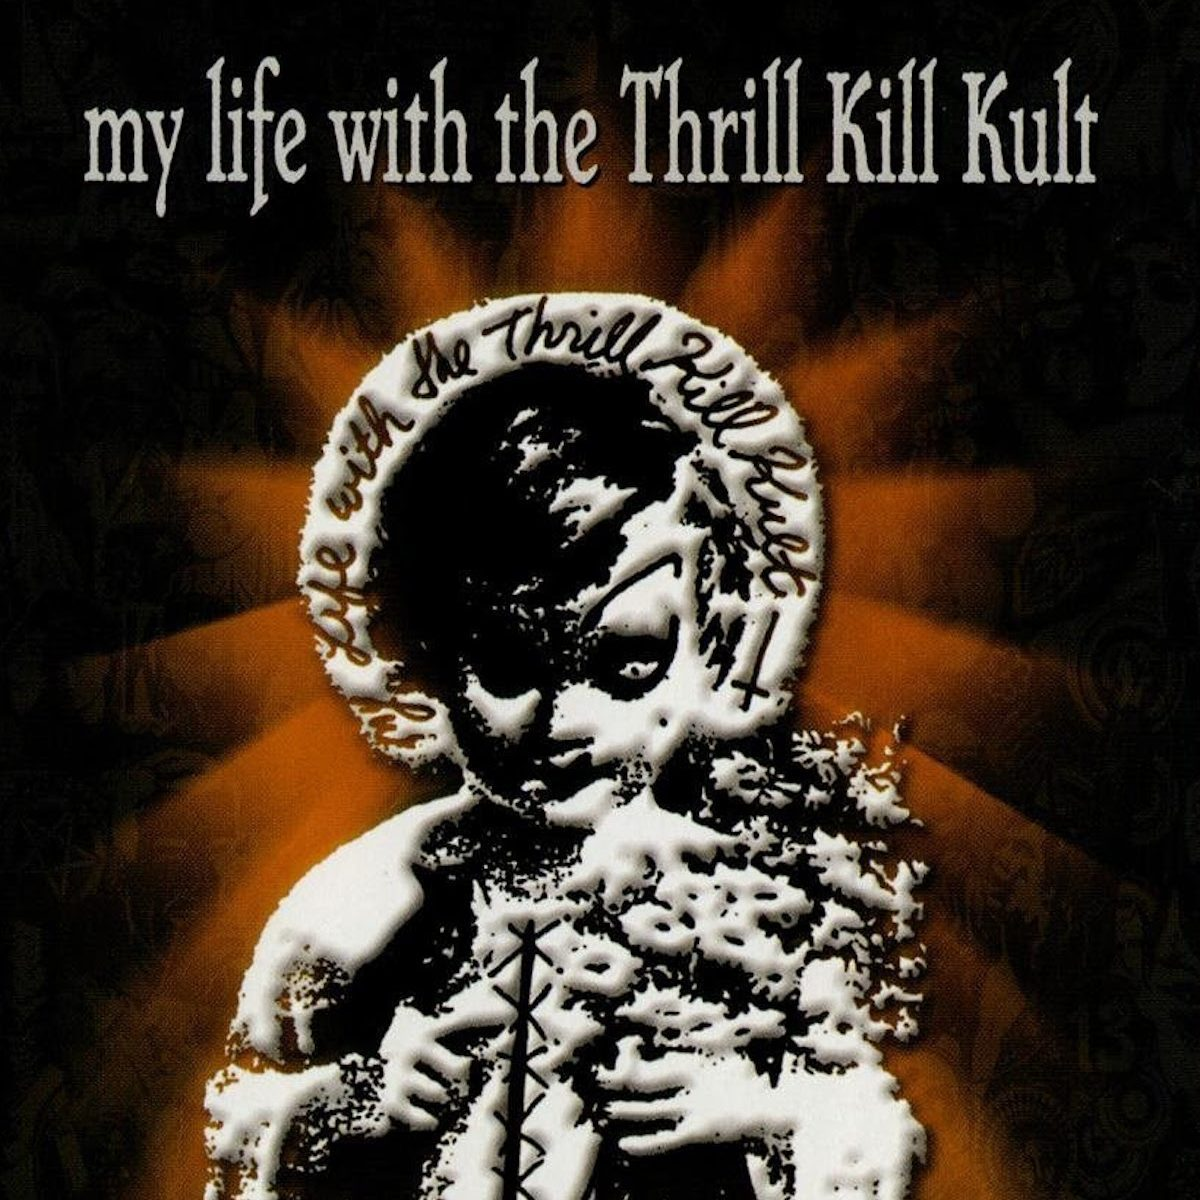 My Life With The Thrill Kill Kult announce upcoming new compilation album:'Sleazy action'